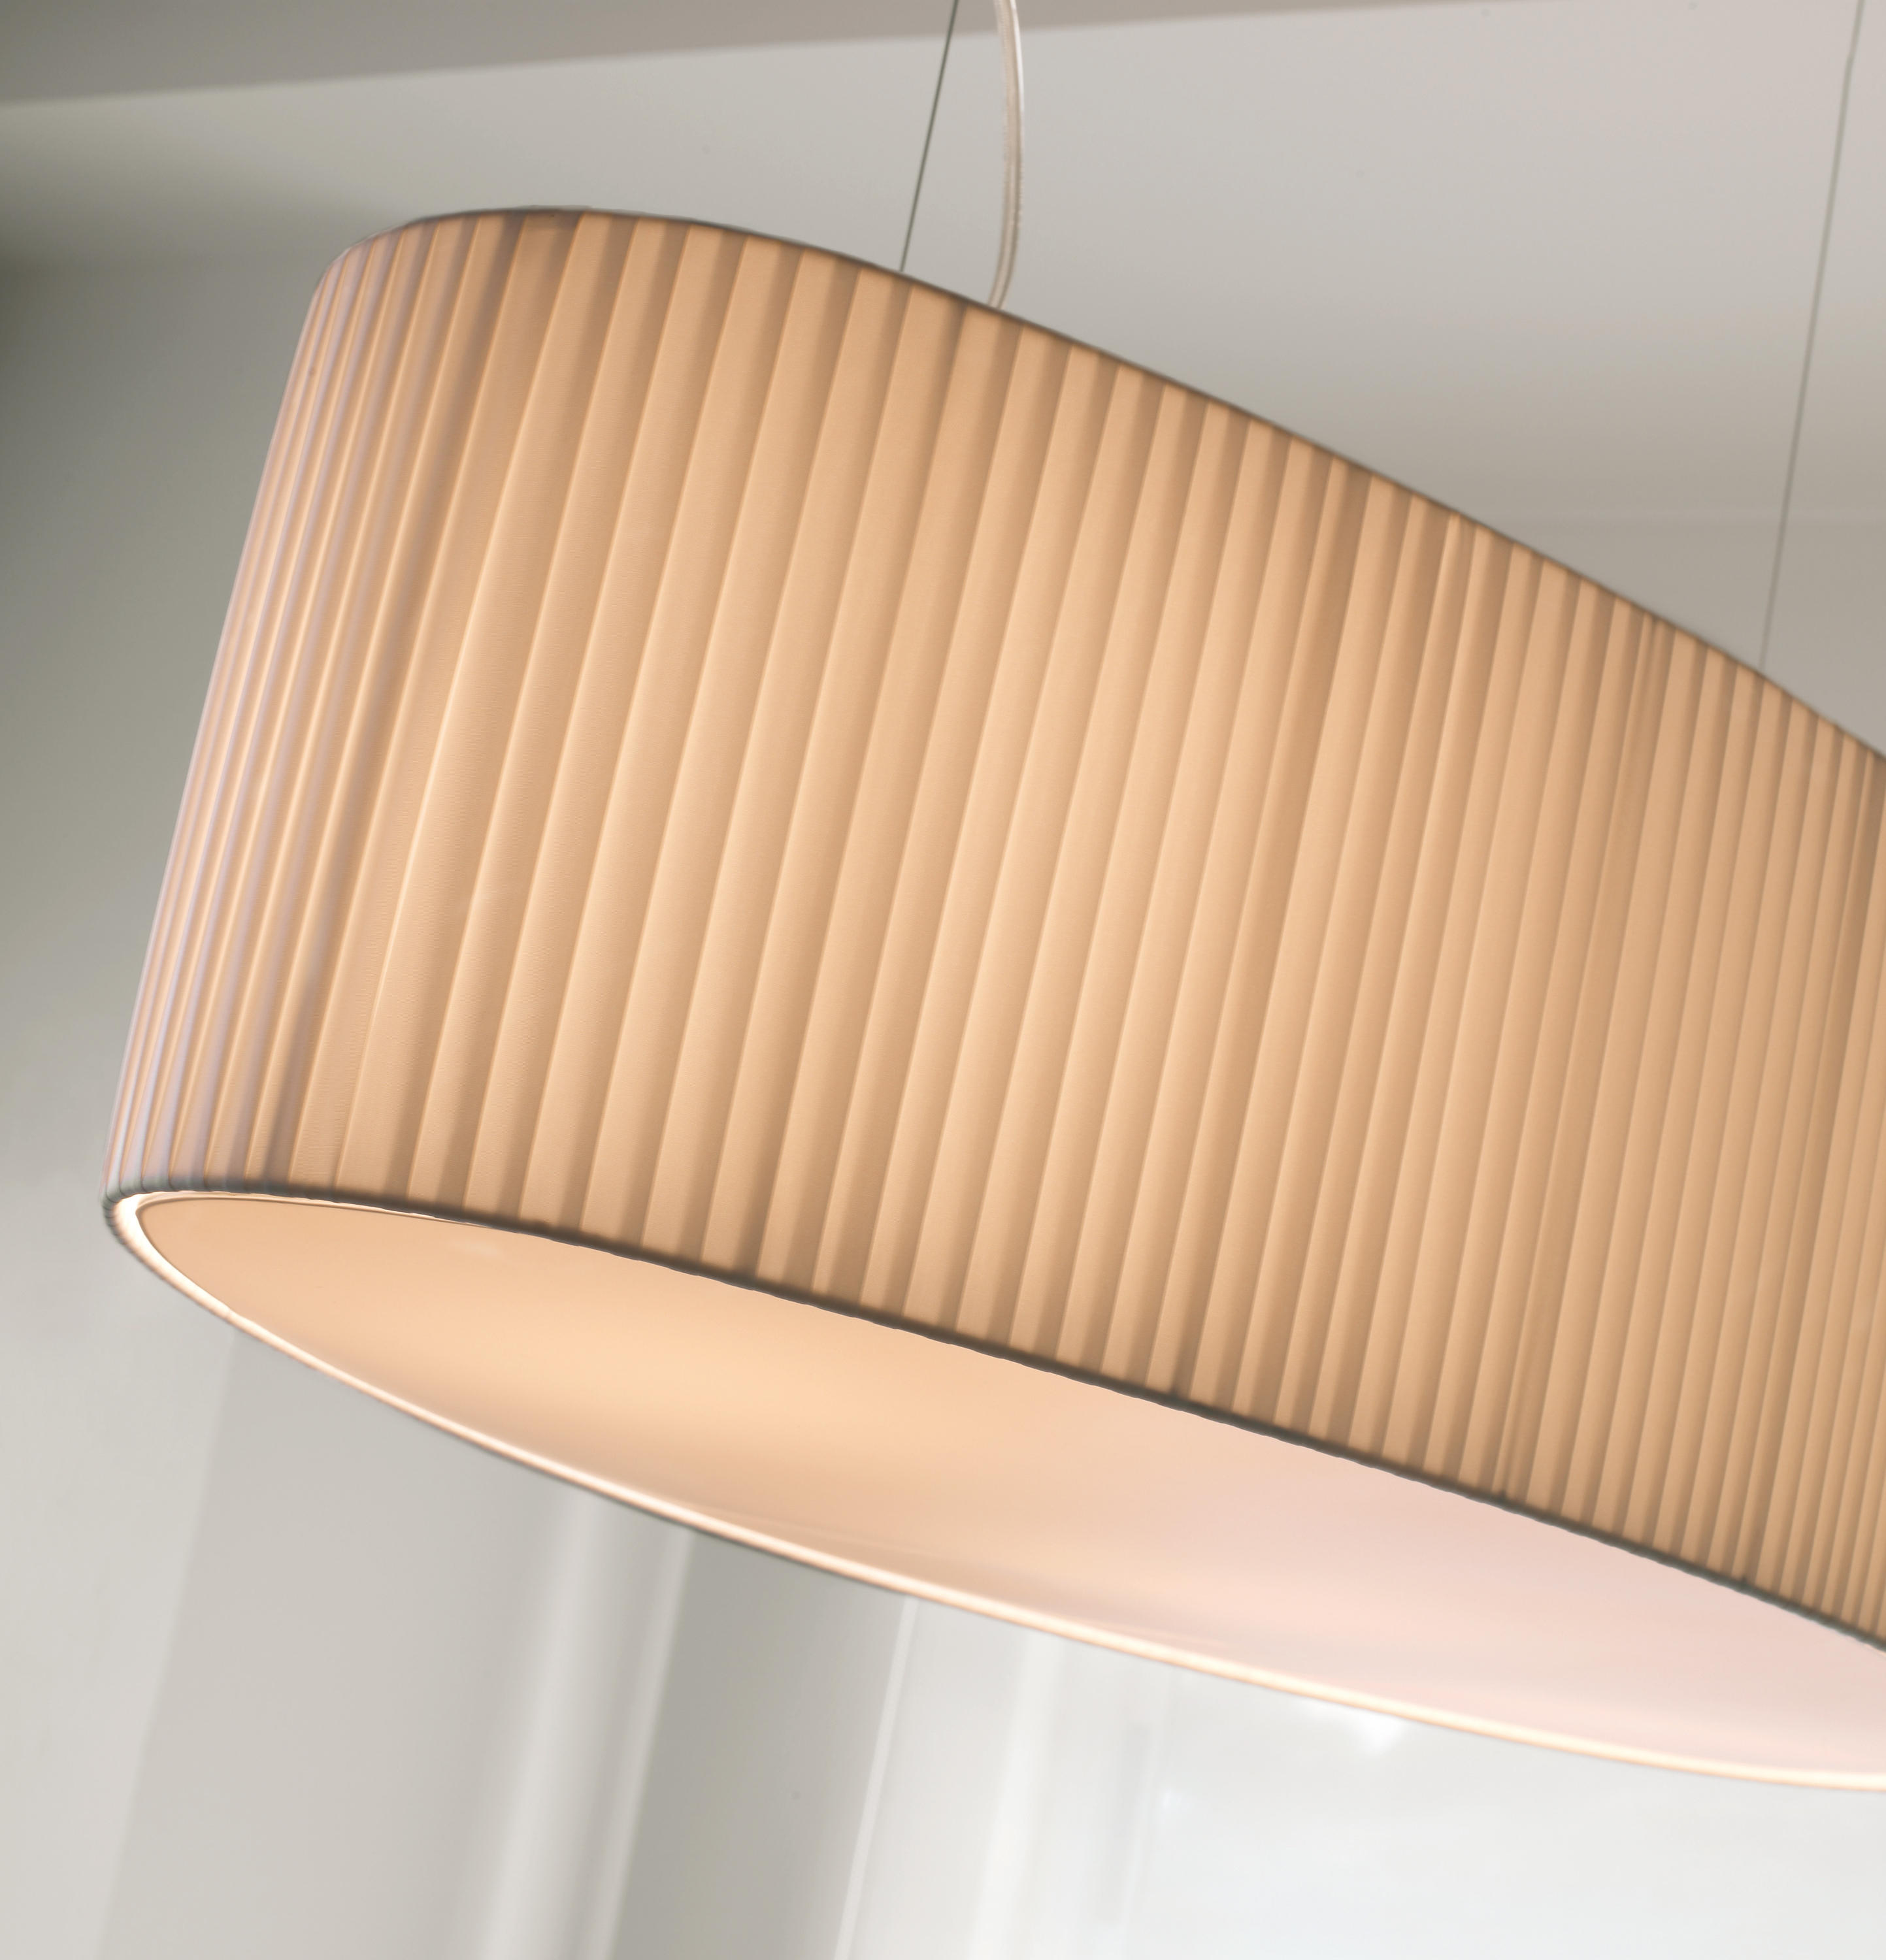 Oval pendant lamp suspended lights from bover architonic oval pendant lamp by bover suspended lights aloadofball Images